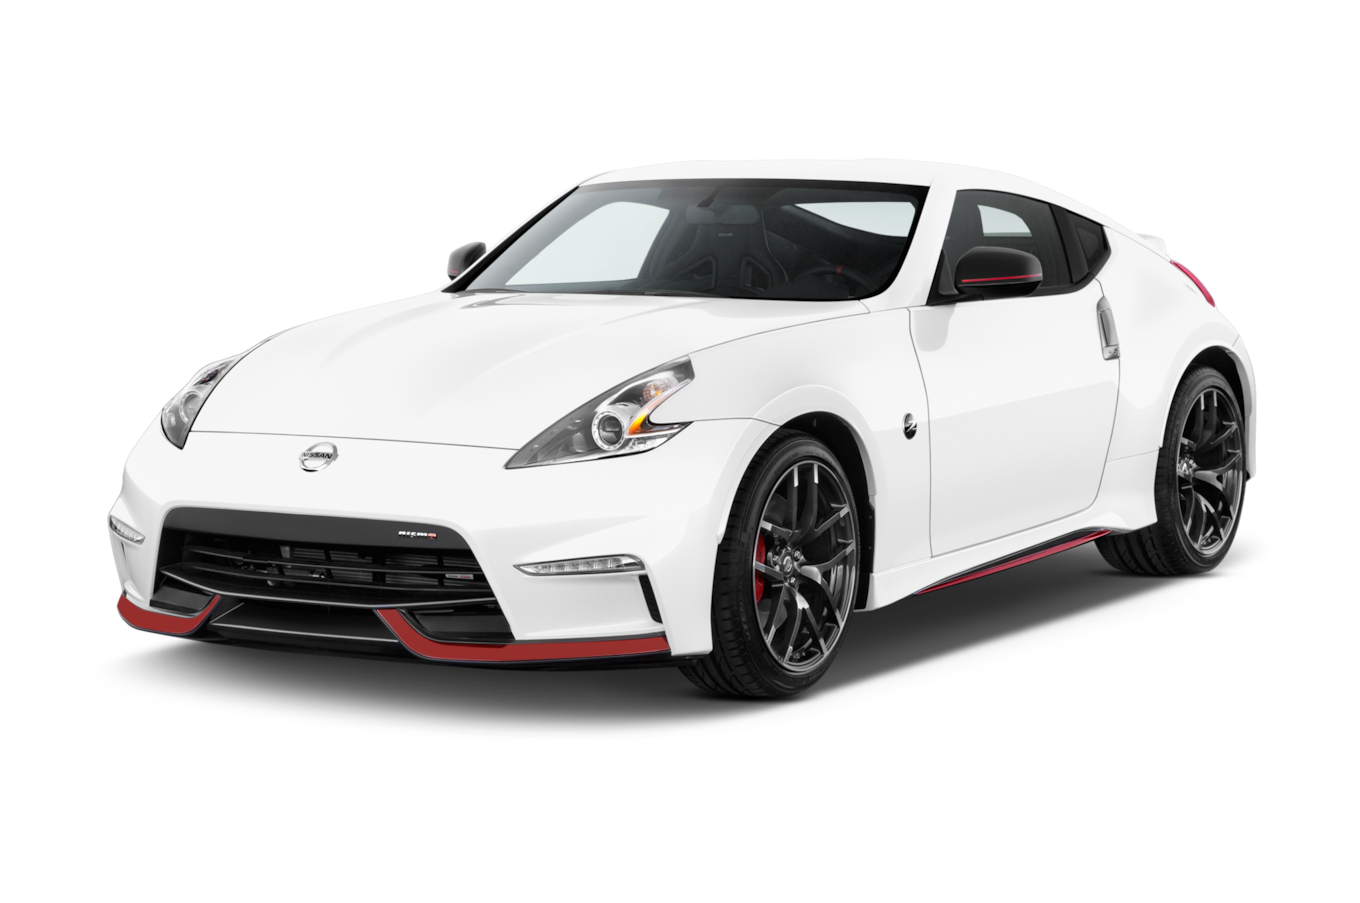 49 Best Review 2019 Nissan Nismo History for 2019 Nissan Nismo